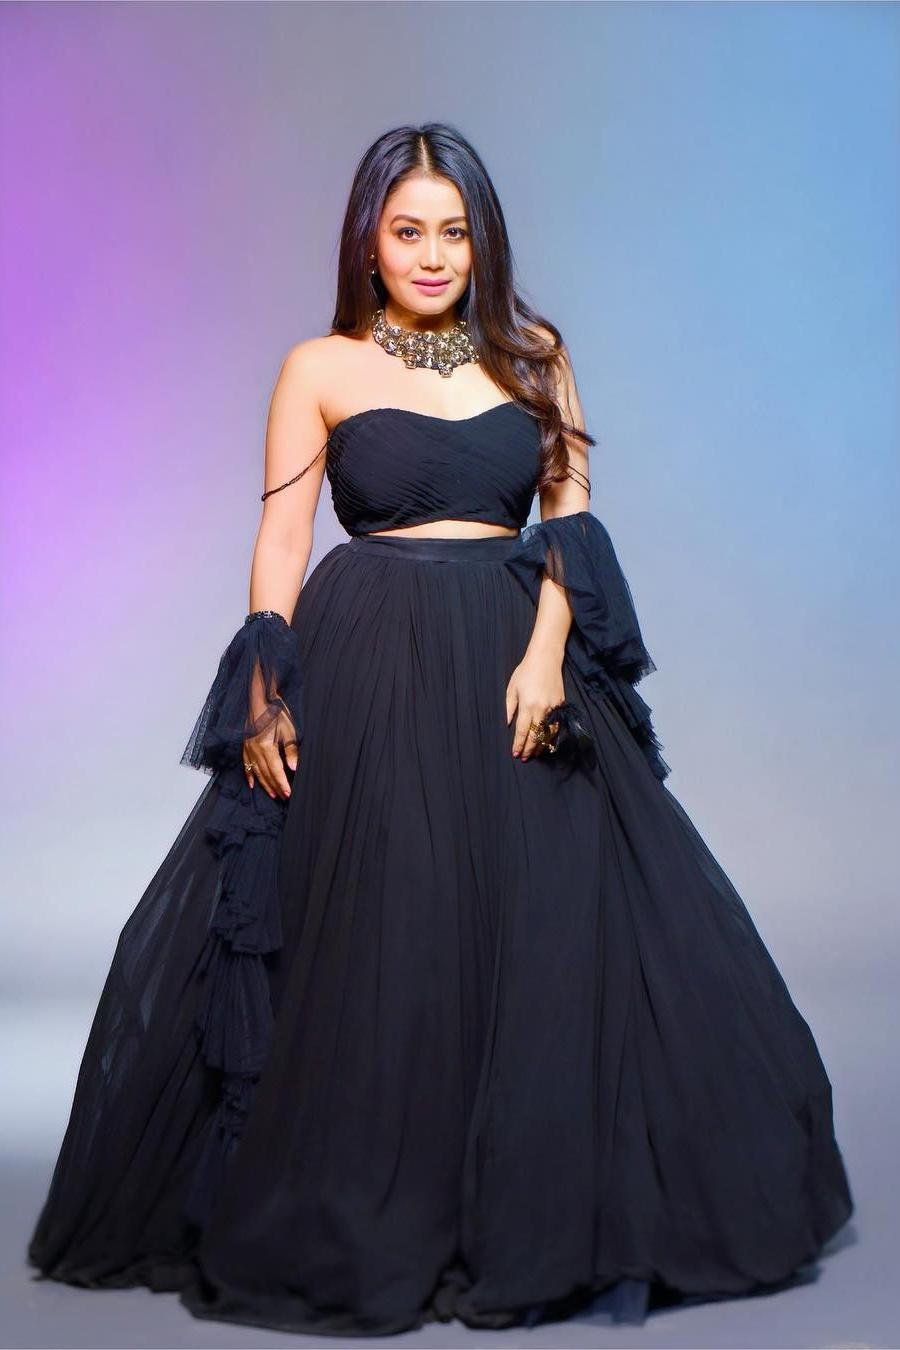 Everything You Wanted To Know About Singer Neha Kakkar